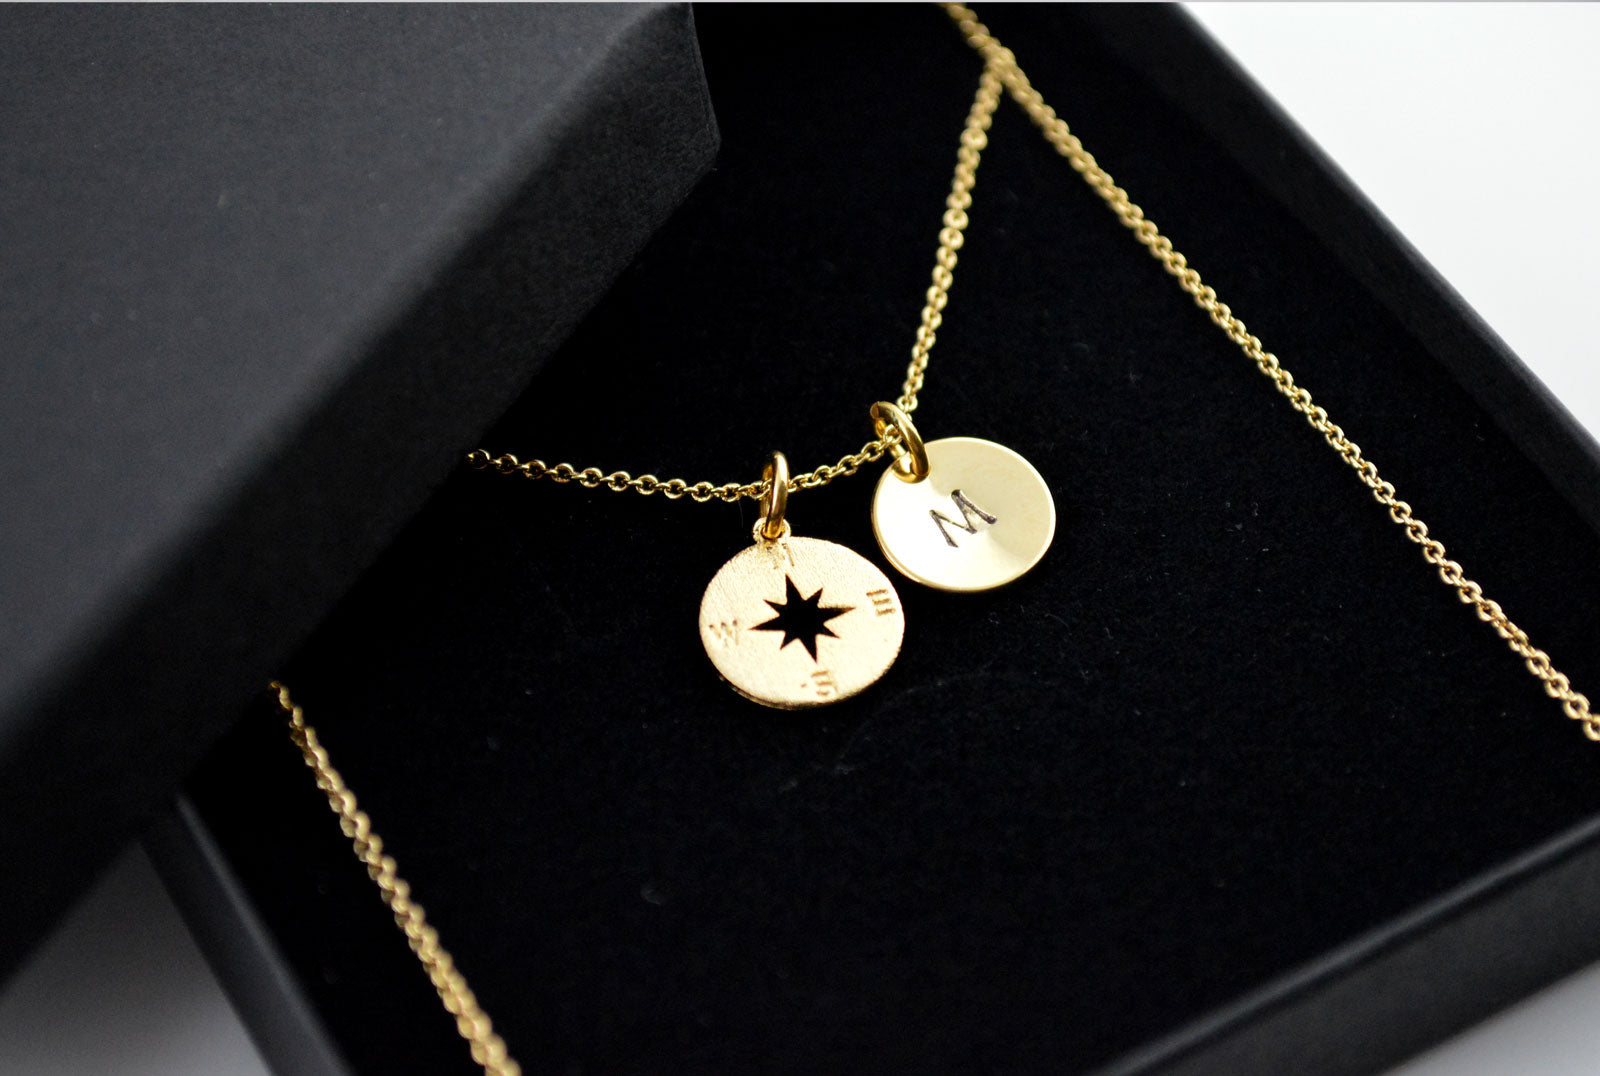 Wanderlust Compass Necklace - Personalised Gold Jewellery